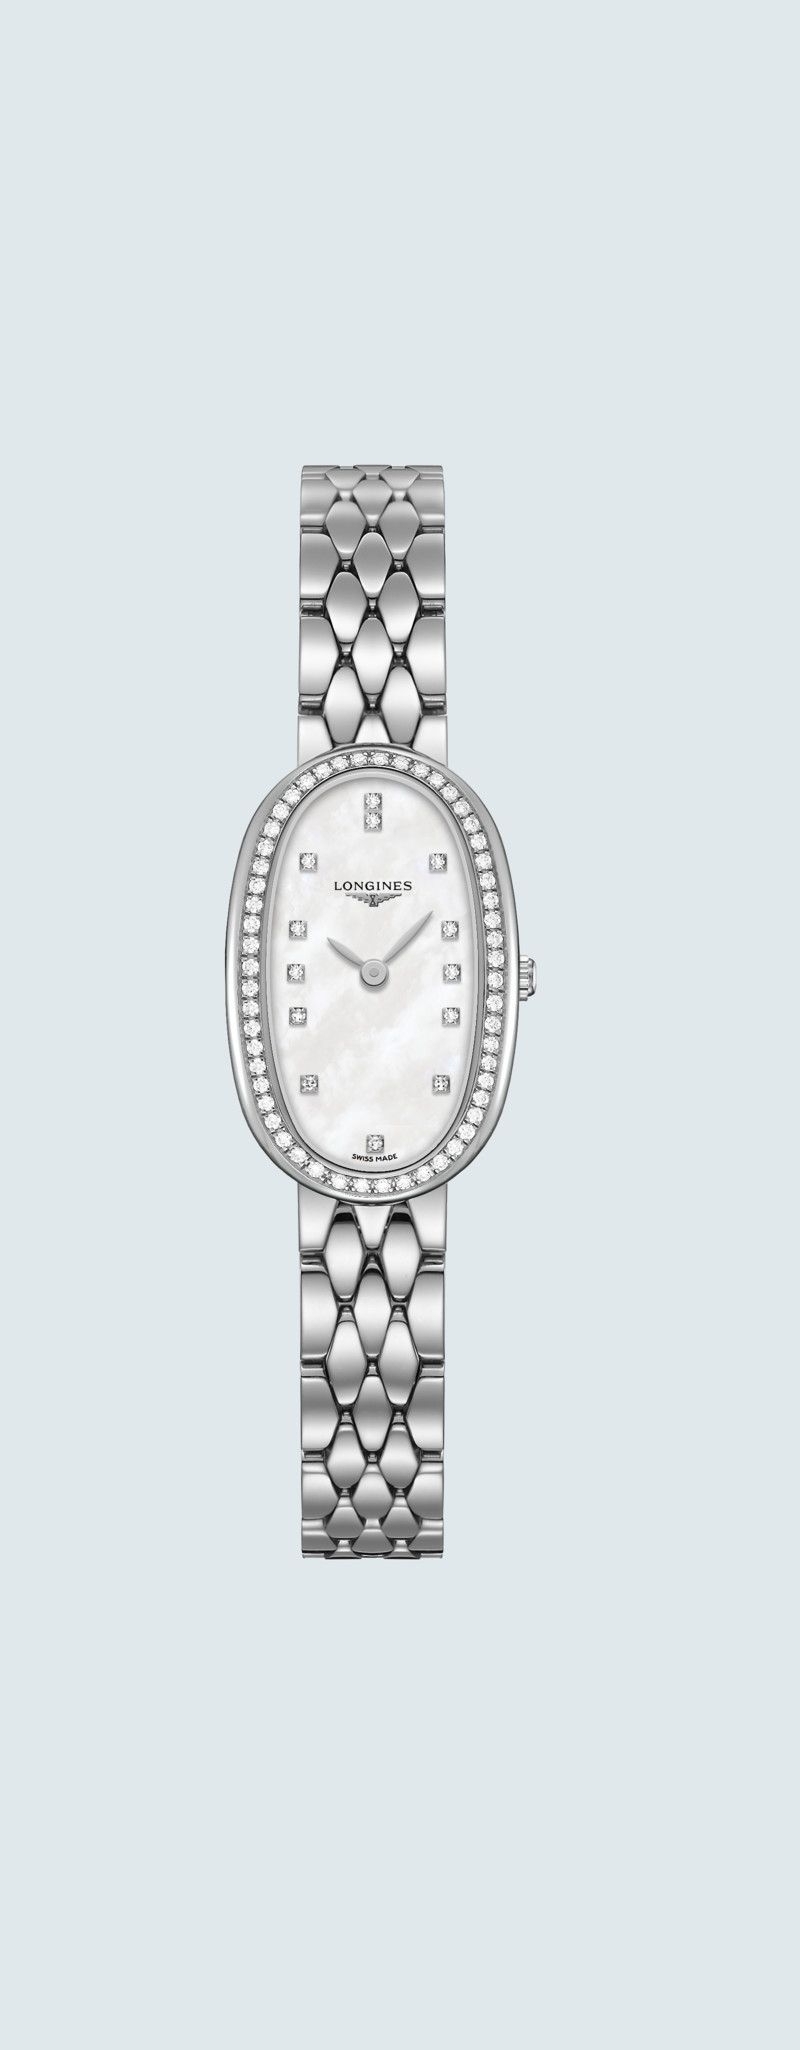 18.90 X 29.40 mm Stainless steel case with White mother-of-pearl dial and Stainless steel strap - c